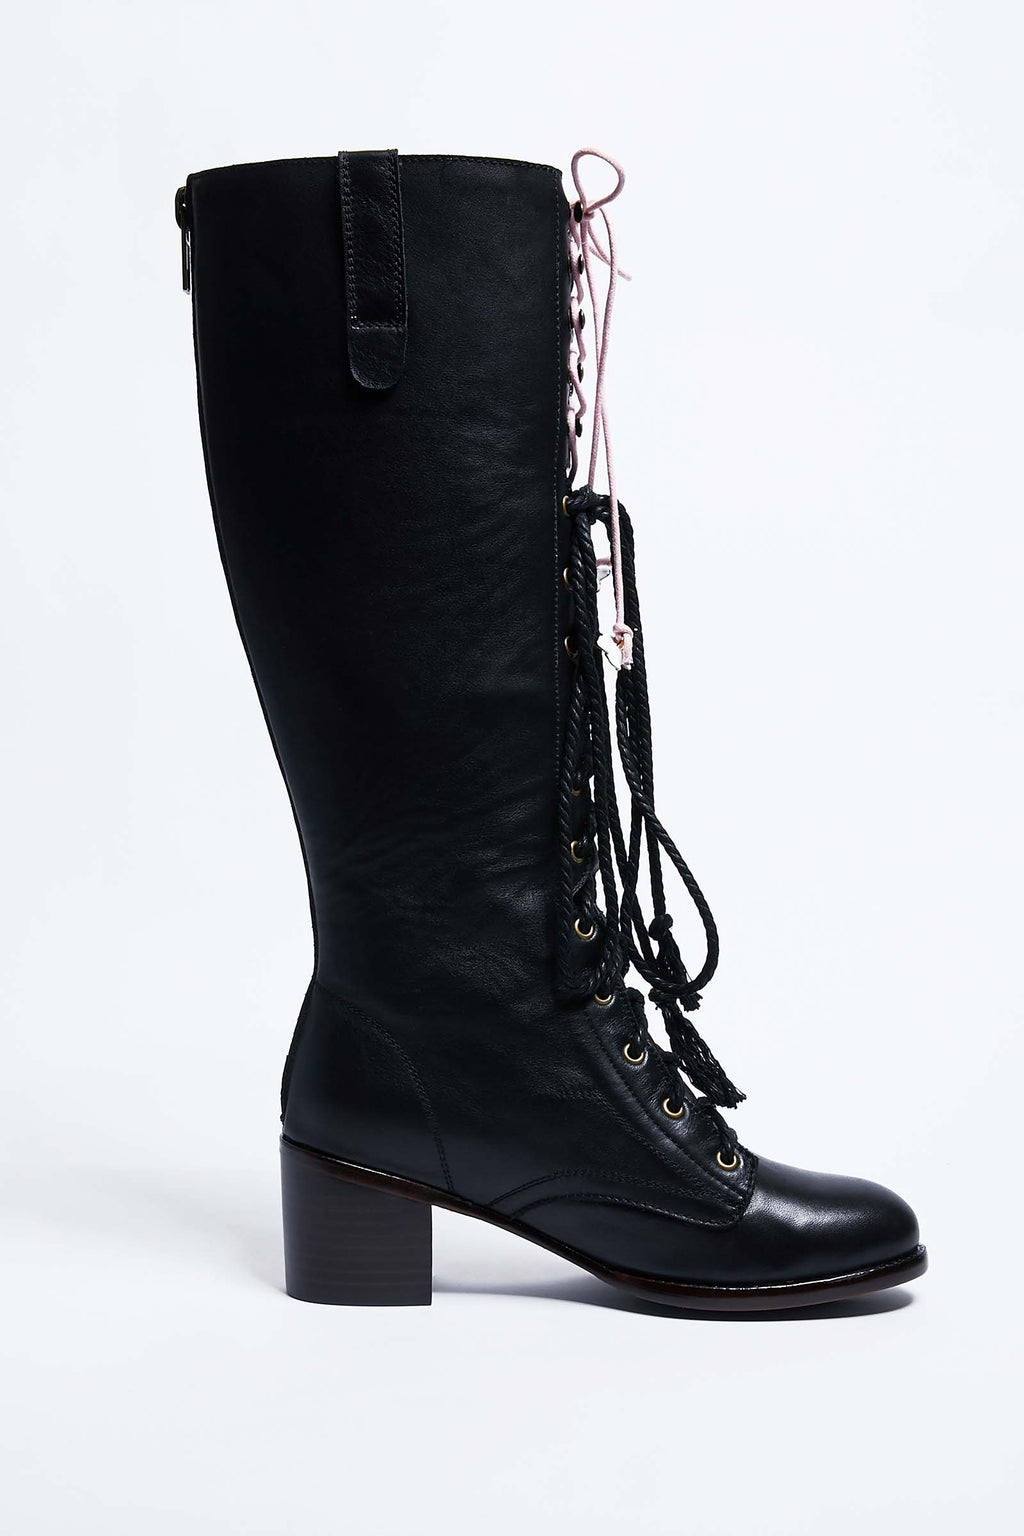 Black High Cherry Blossom Embroidered Leather Boots